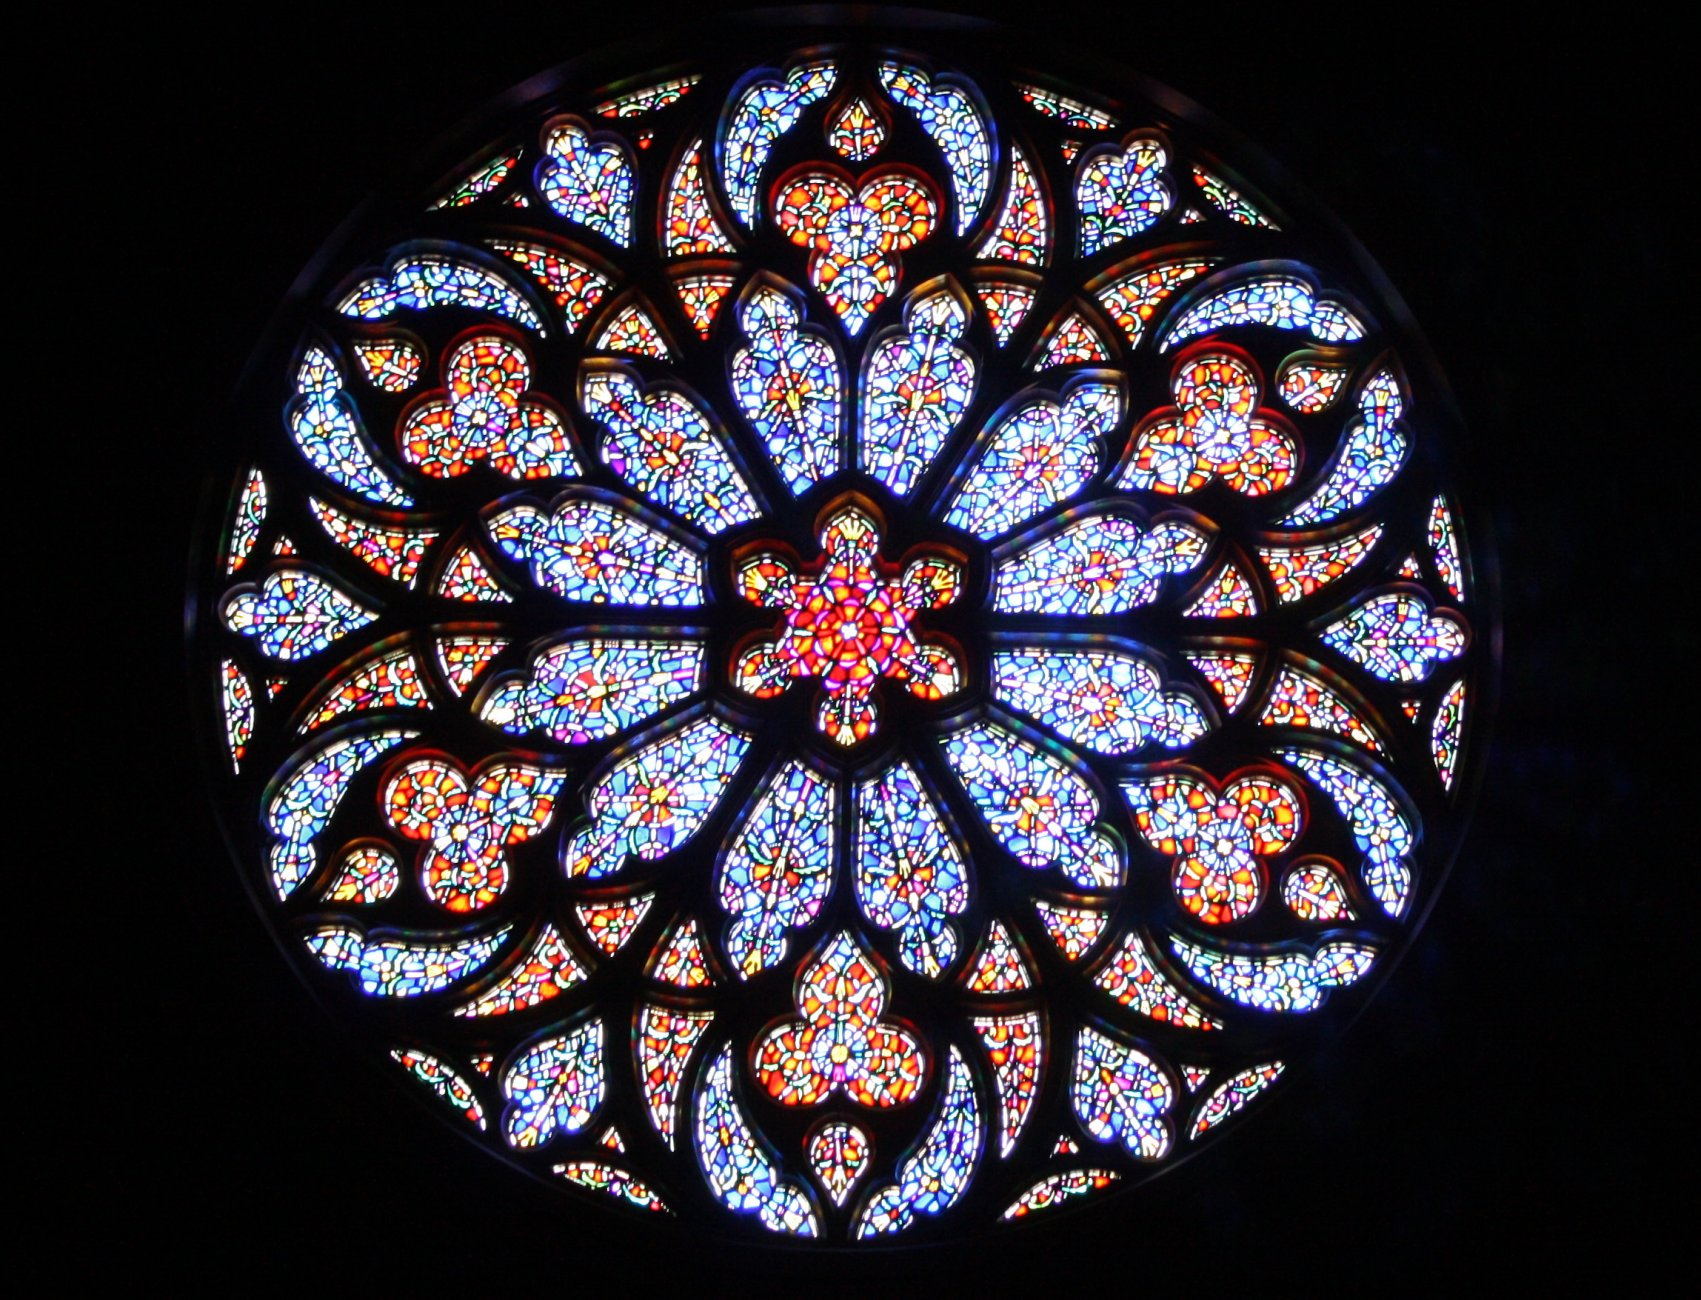 Rose_Window.jpg